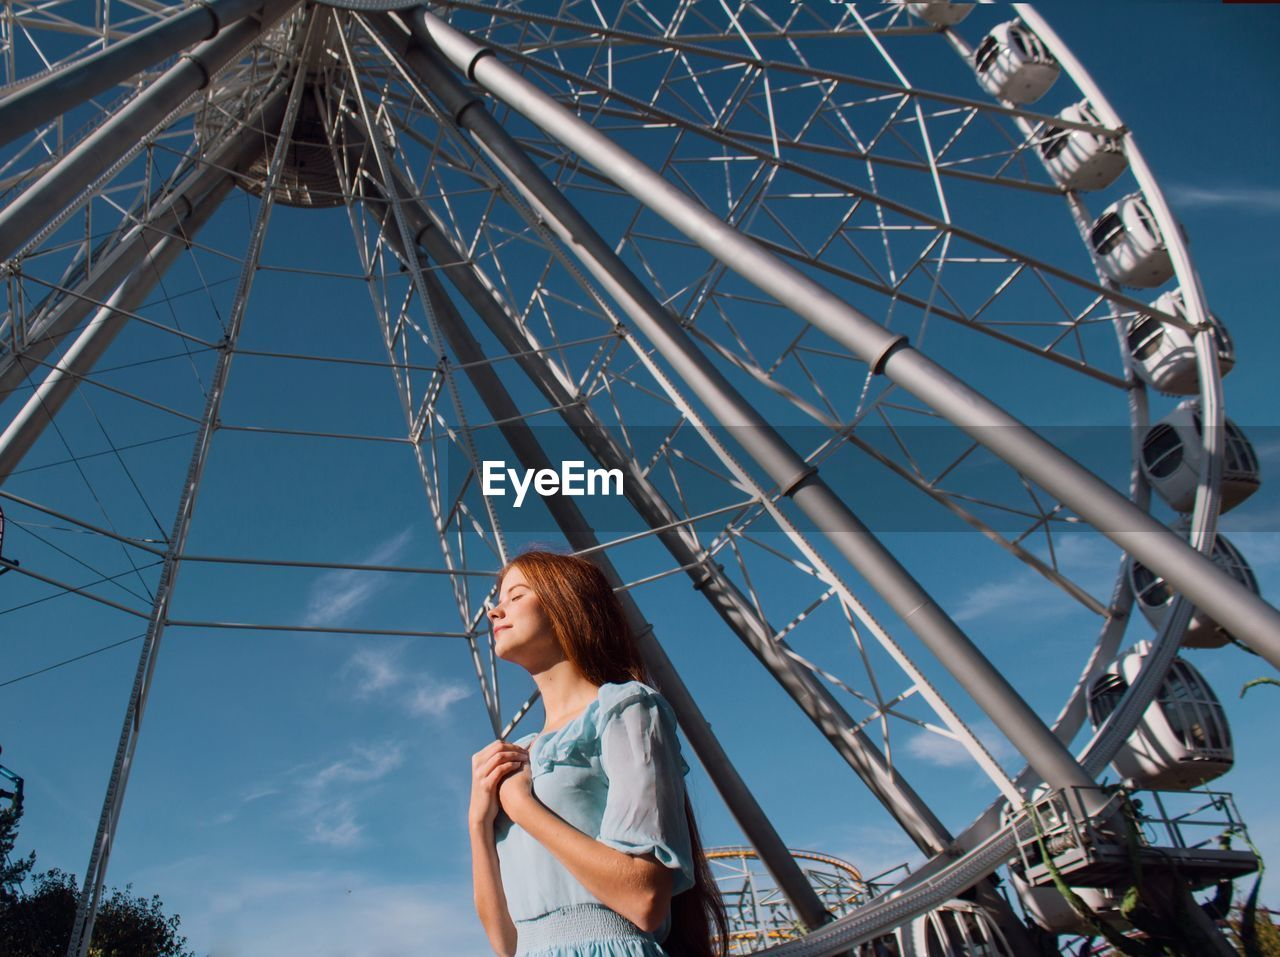 amusement park ride, leisure activity, amusement park, low angle view, ferris wheel, real people, sky, lifestyles, one person, day, nature, casual clothing, young adult, arts culture and entertainment, young women, enjoyment, child, looking, outdoors, hairstyle